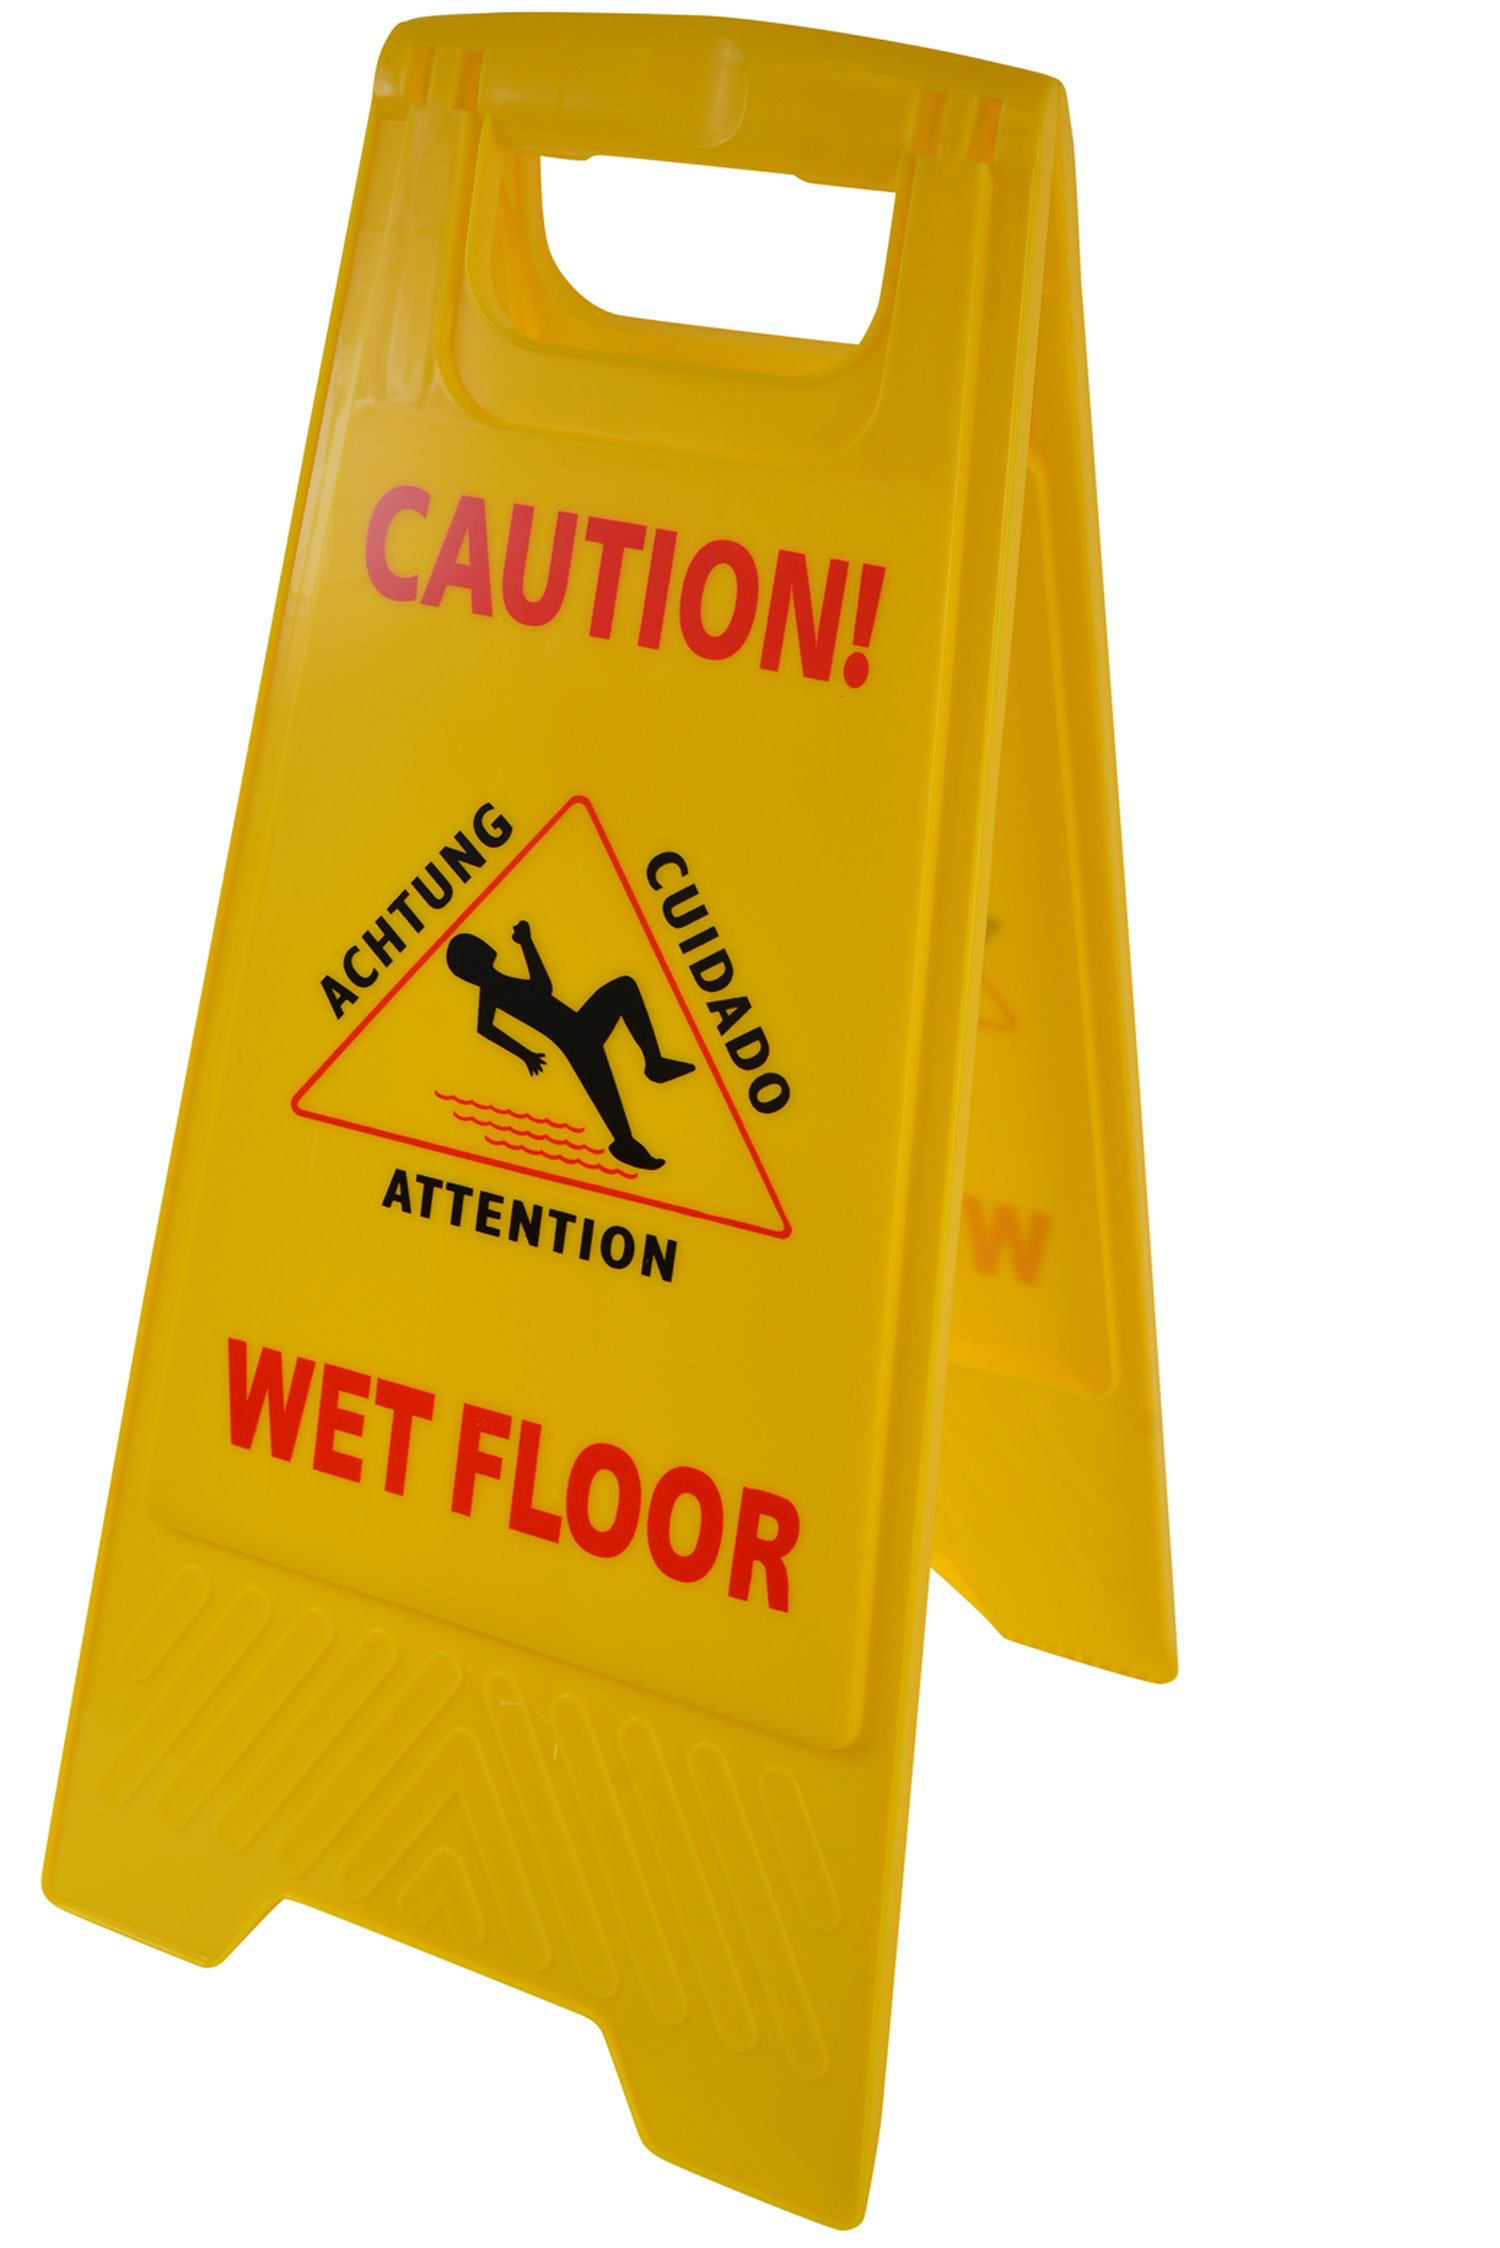 Janico 1070 Wet Floor Caution Sign, Multi-Lingual, 2 Sided, Yellow (Pack of 1)